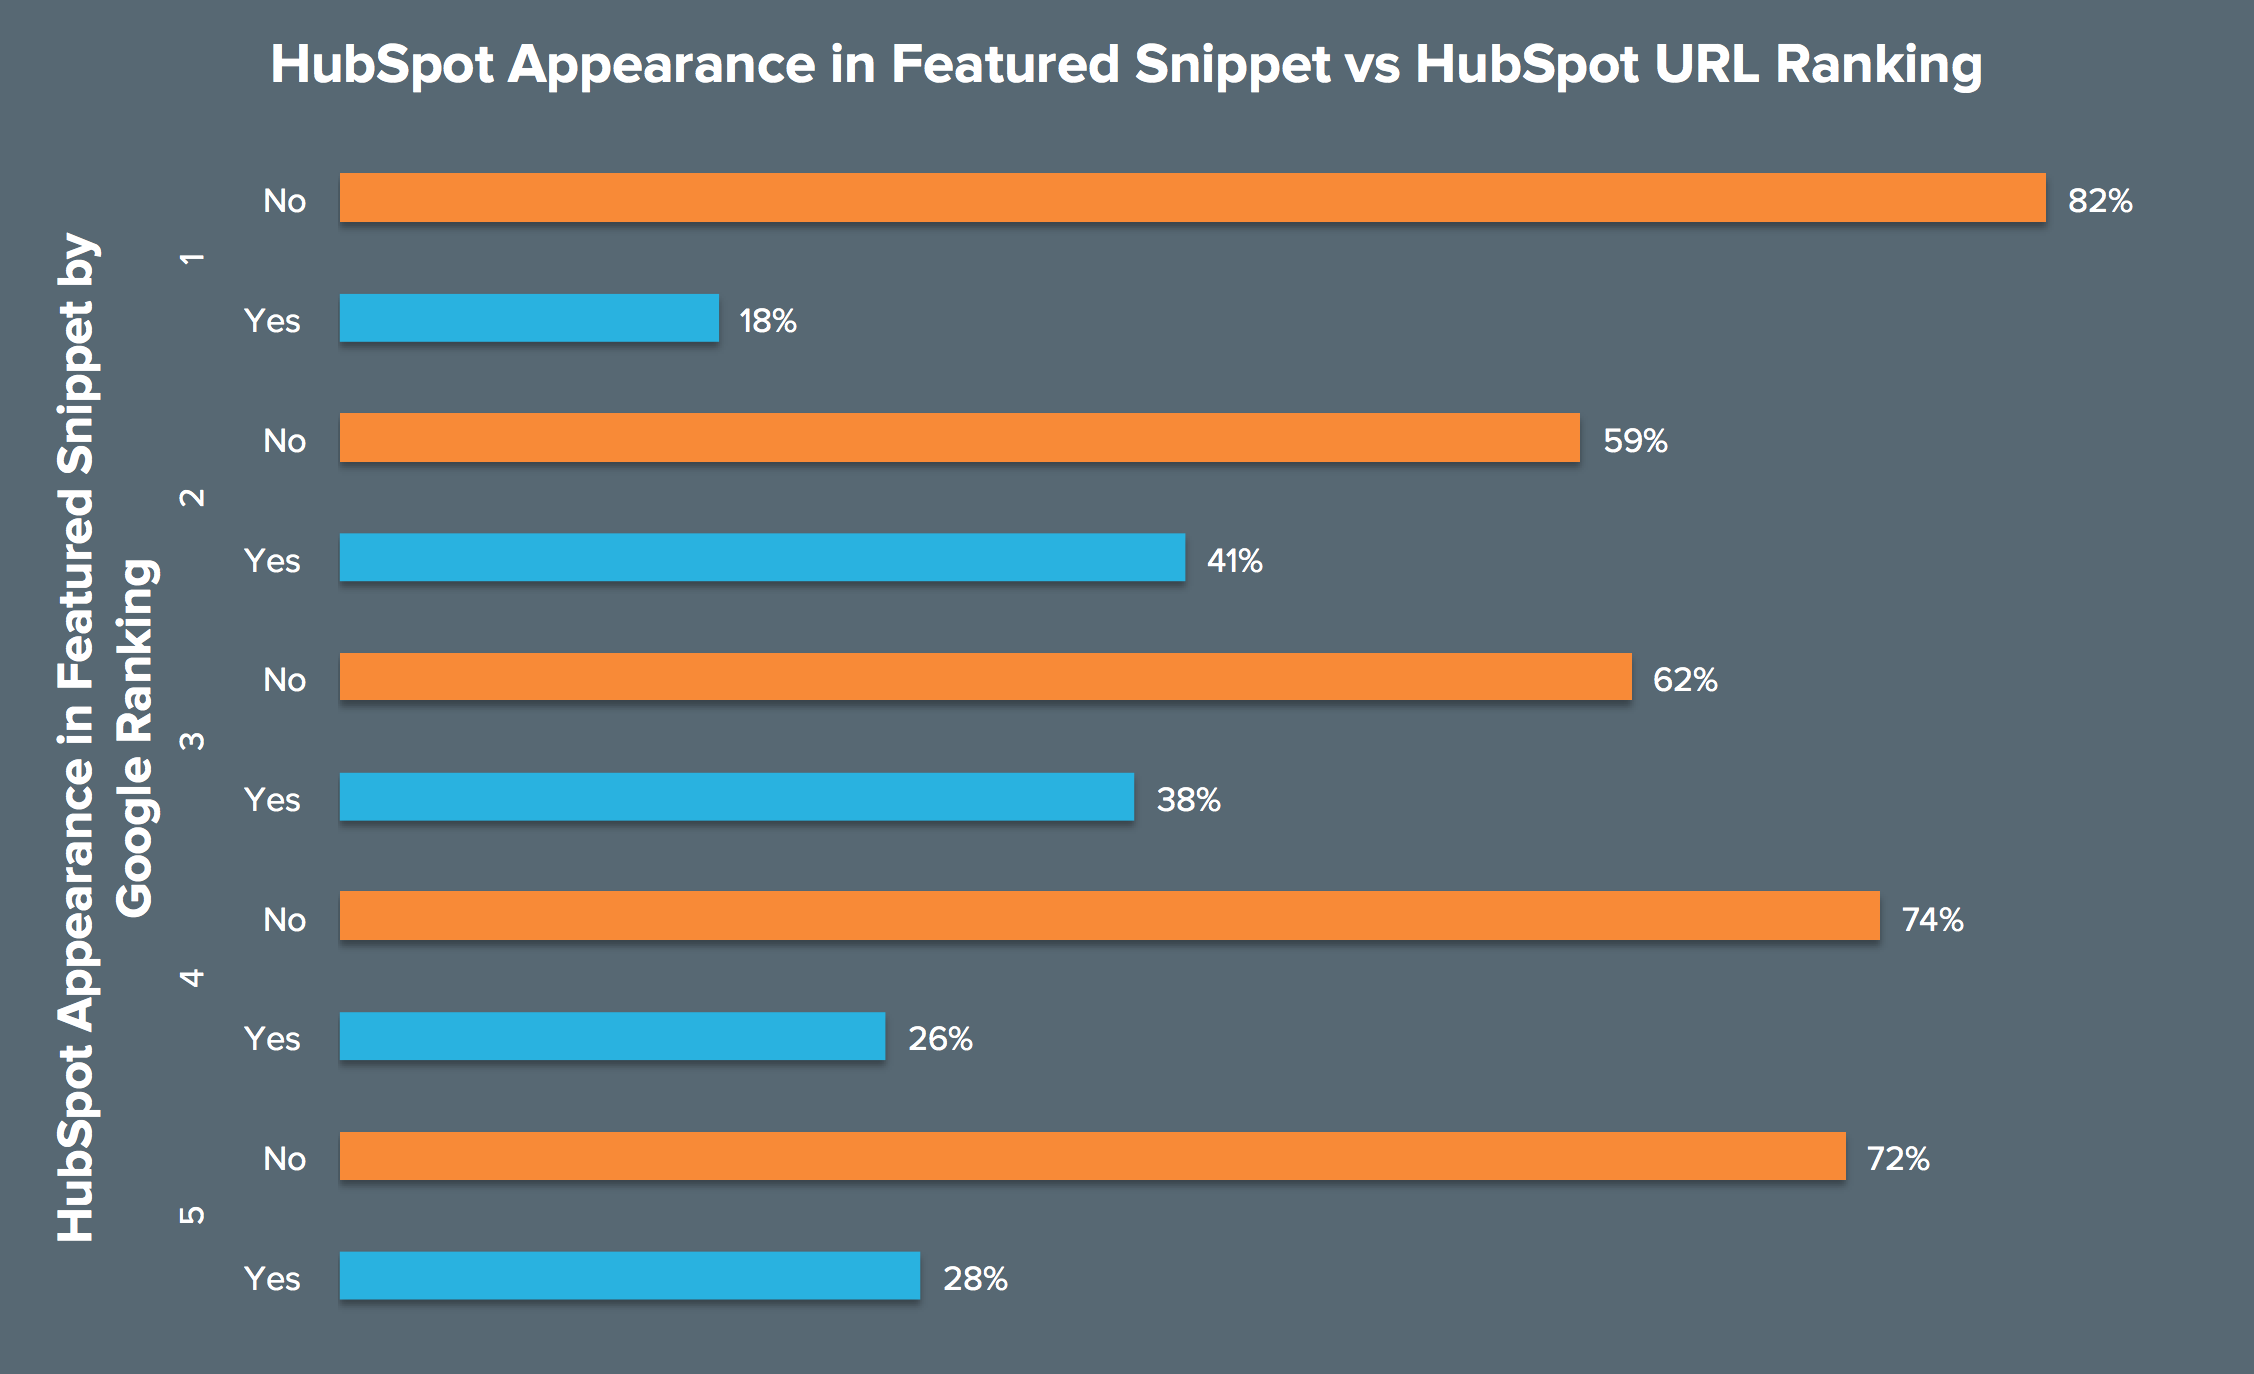 Chart: Appearance in Featured Snippet vs URL Ranking